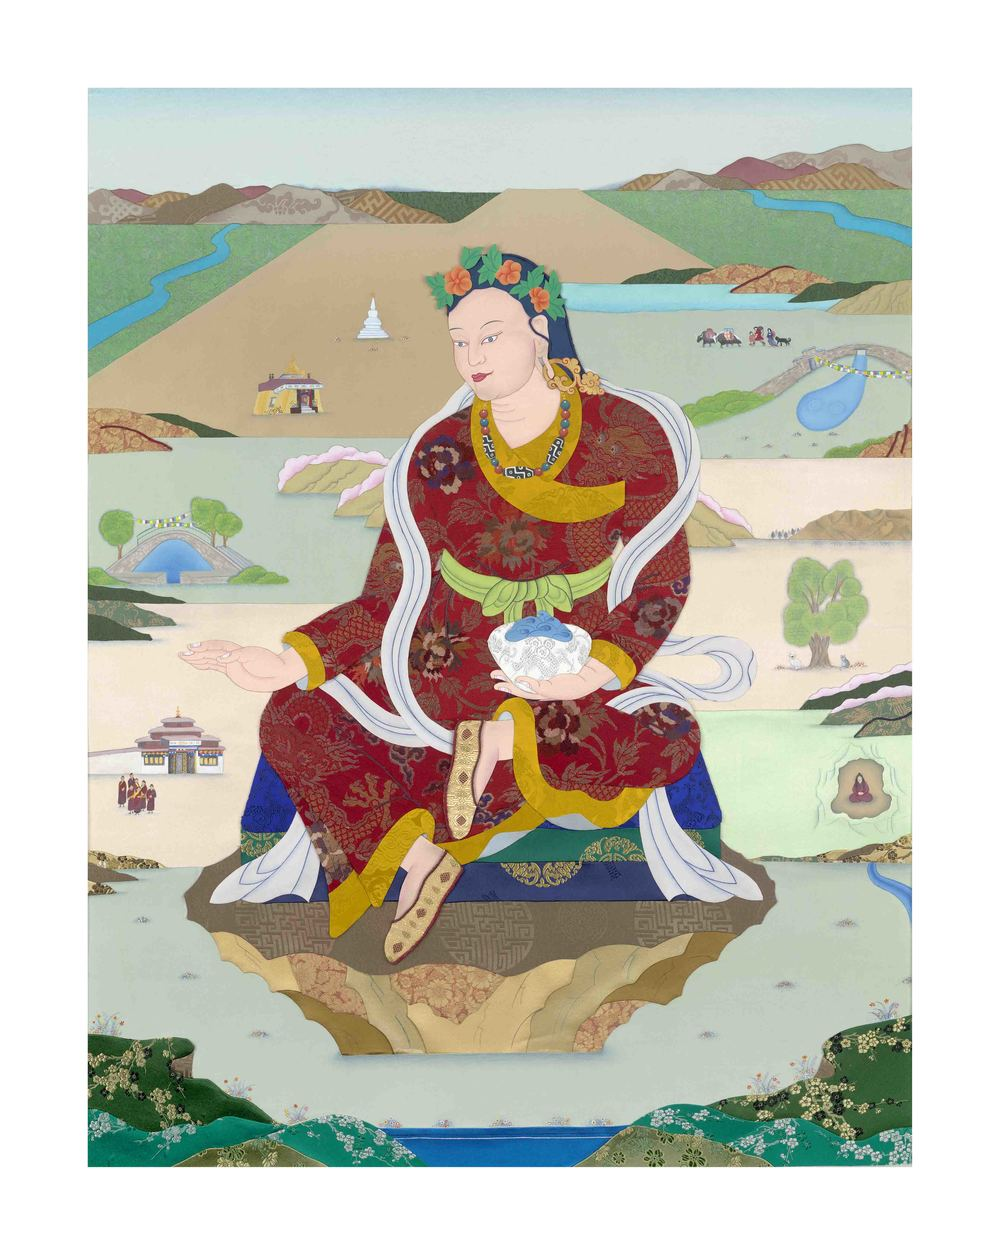 Khandro Yeshe Tsogyal at her birthplace, Tsogyal Latso. Applique thangka by artist Leslie Nguyen Temple commissioned by Jnanasukha Foundation. Digital prints available for purchase starting November 1, 2016.